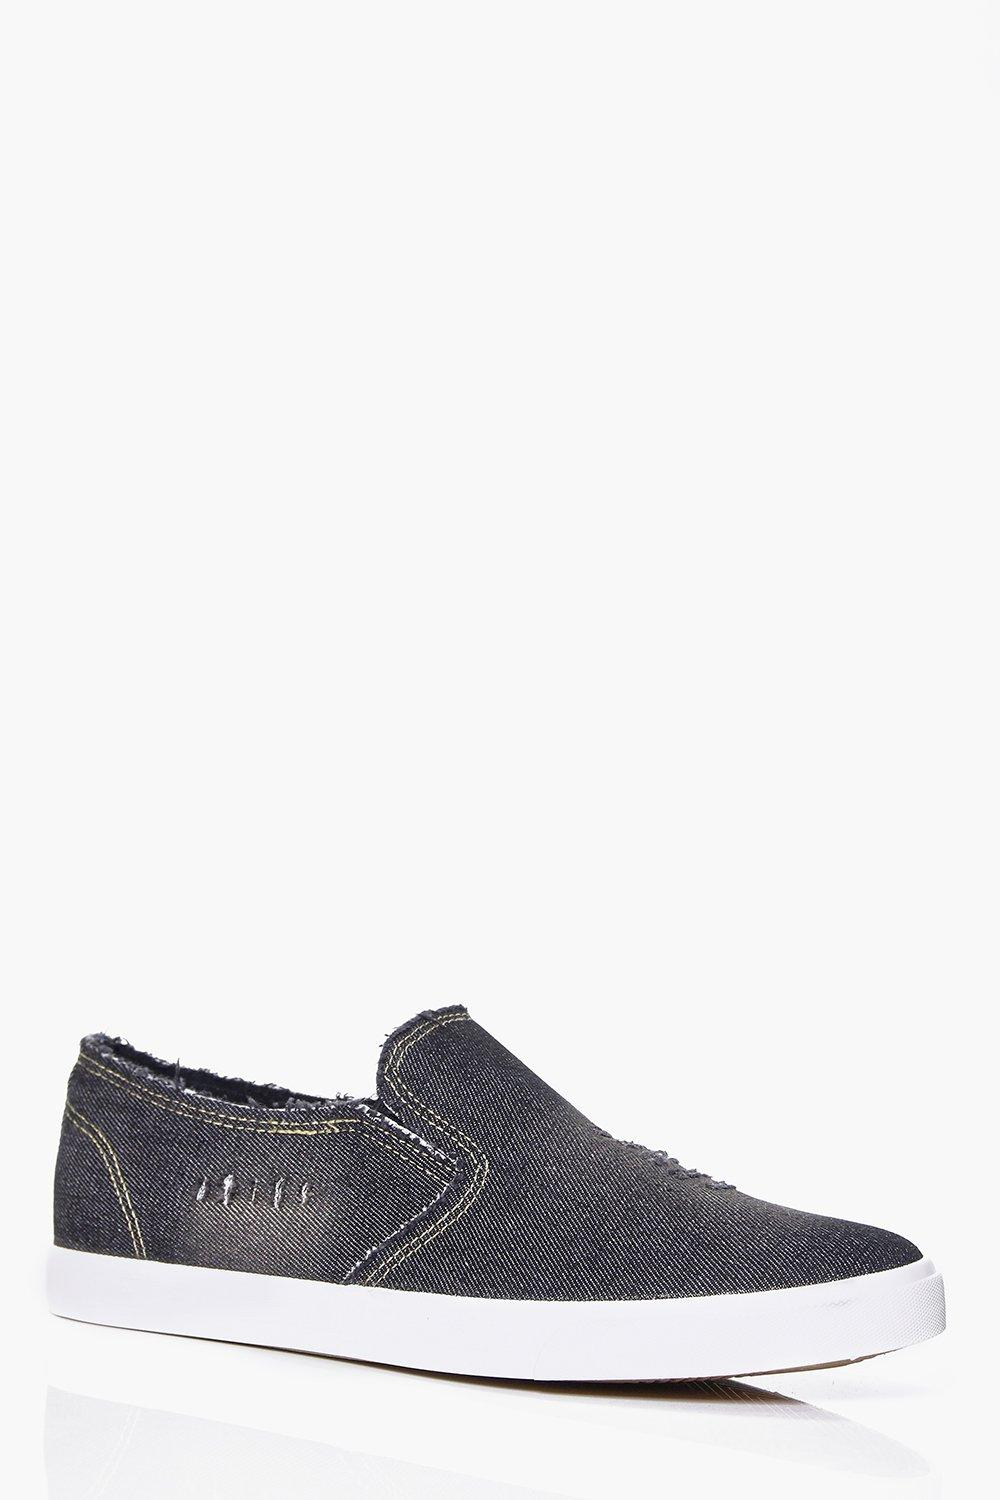 Distressed Washed Black Slip On Plimsolls